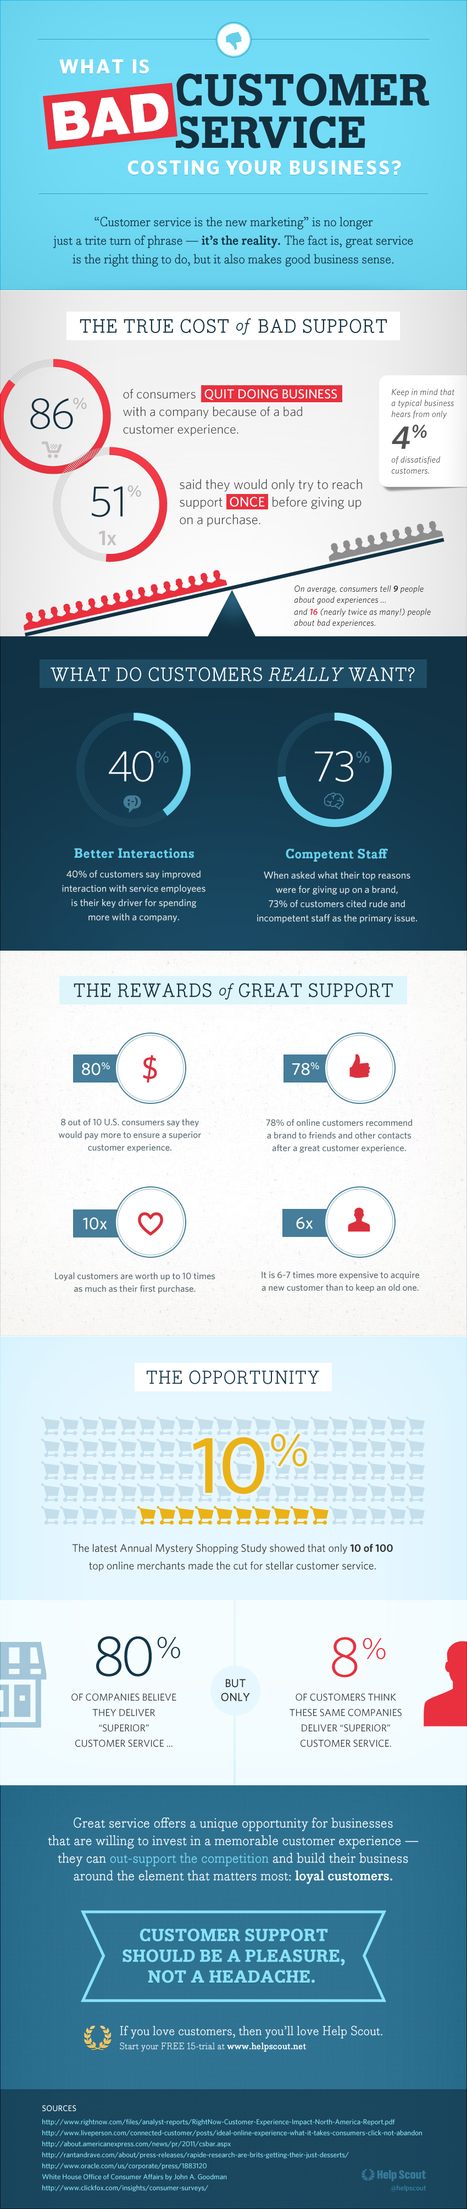 What Bad Customer Service Costs Your Business #Infographic   MarketingHits   Scoop.it